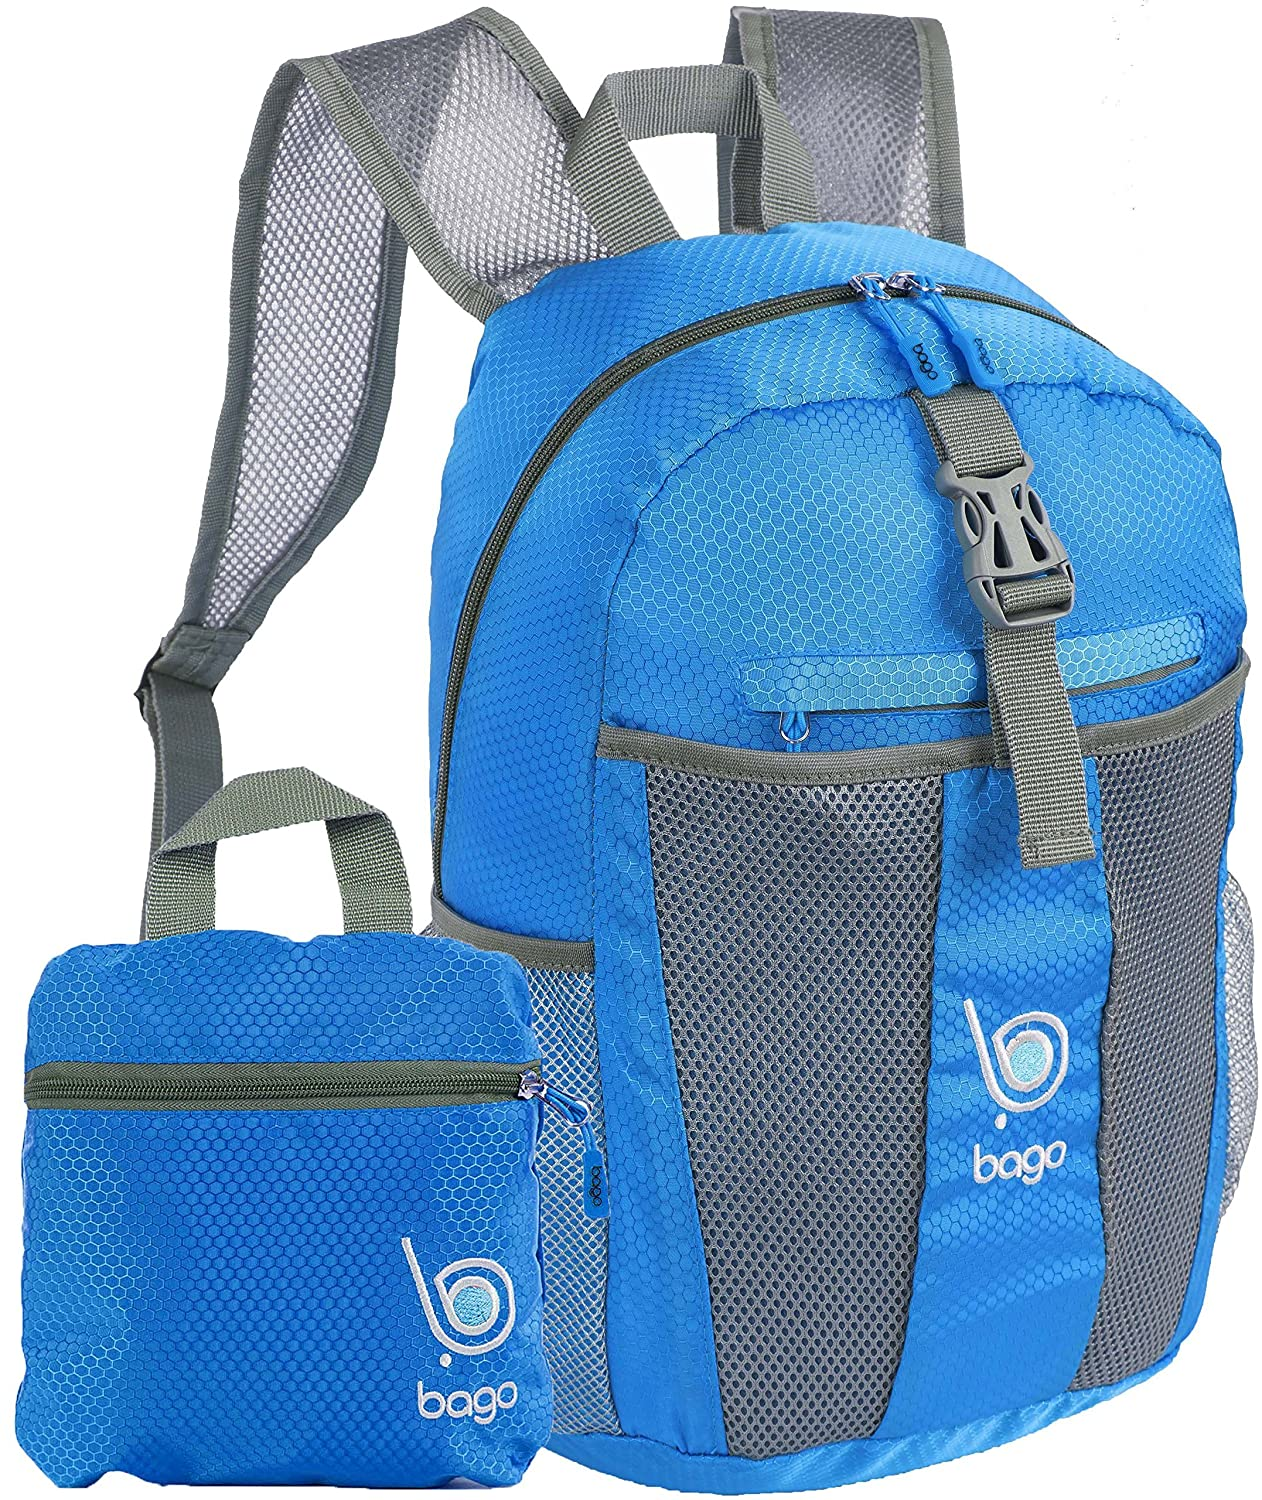 69c854ba28 chic bago Lightweight Foldable Backpack for Travel and Sport - 25L  Collapsible Daybag